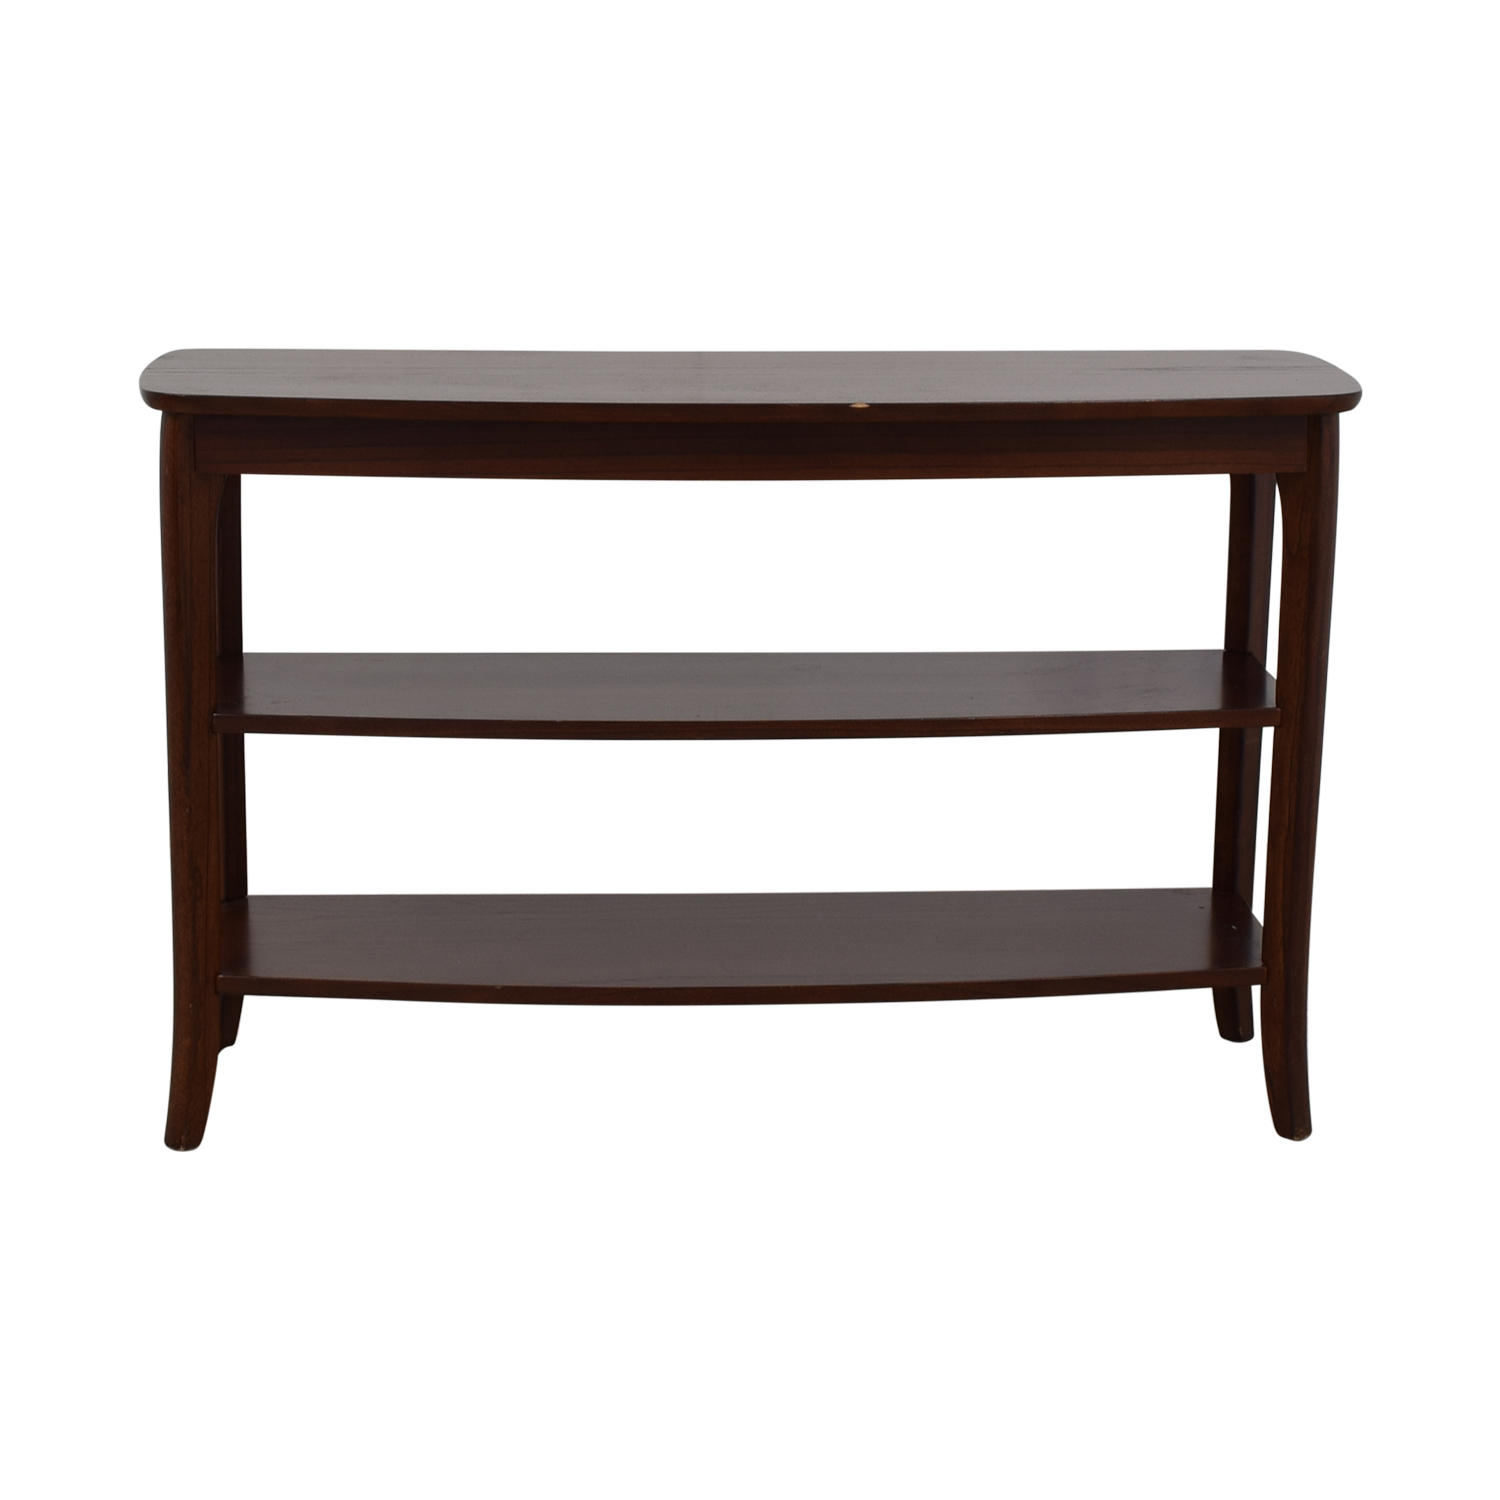 Pottery Barn Pottery Barn Console Table on sale